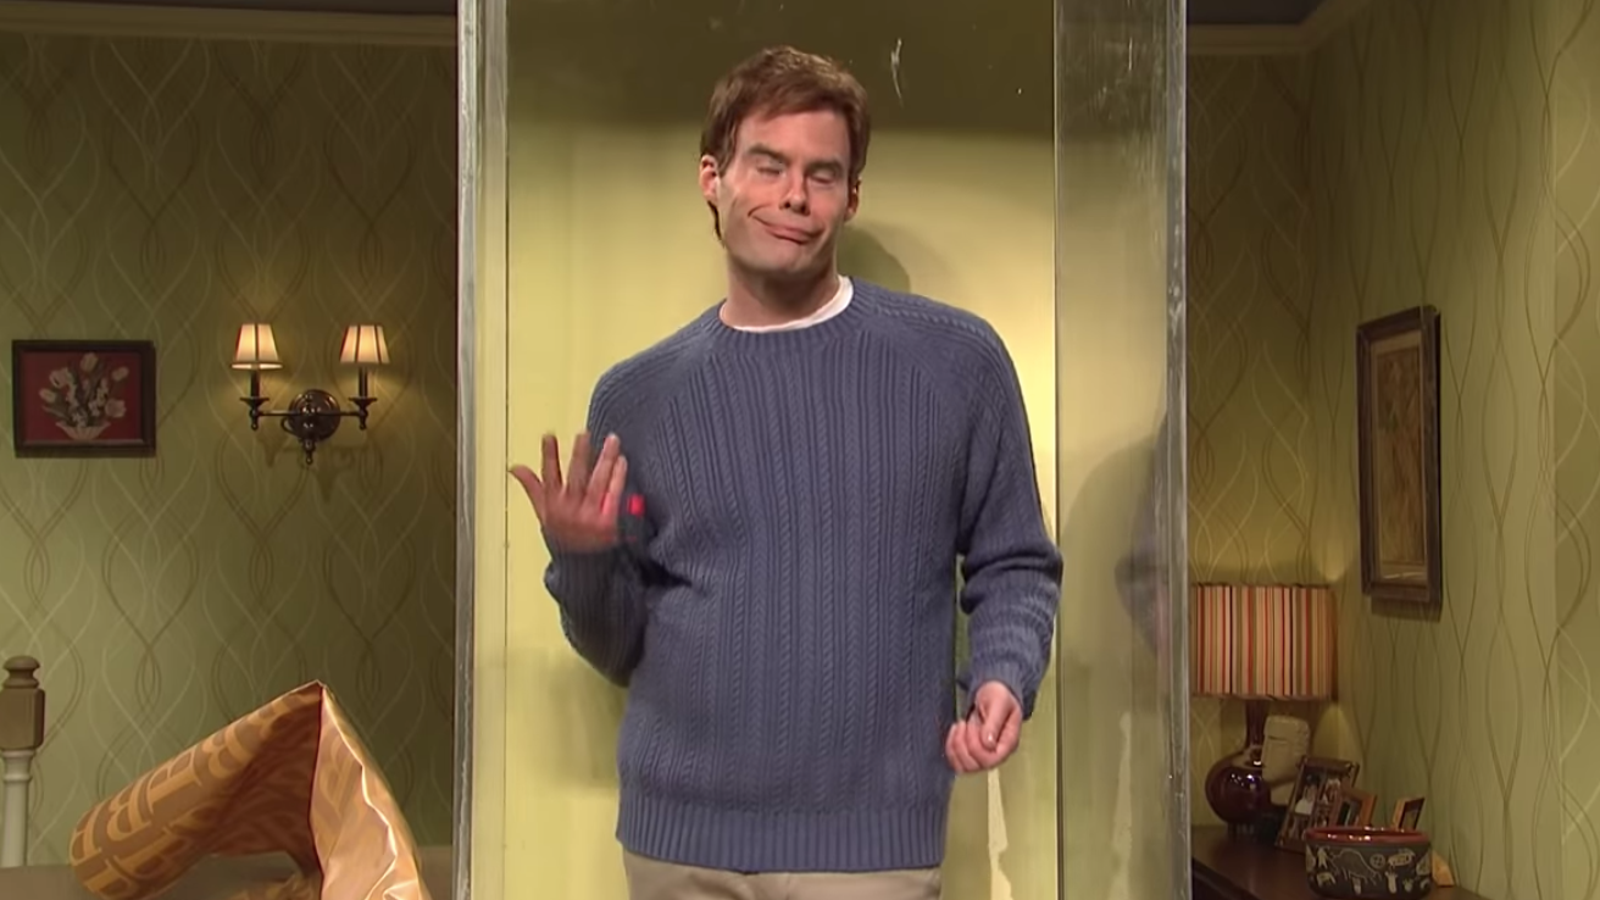 Awkward dudes on the dance floor, the Bill Hader Dancing To meme is for you